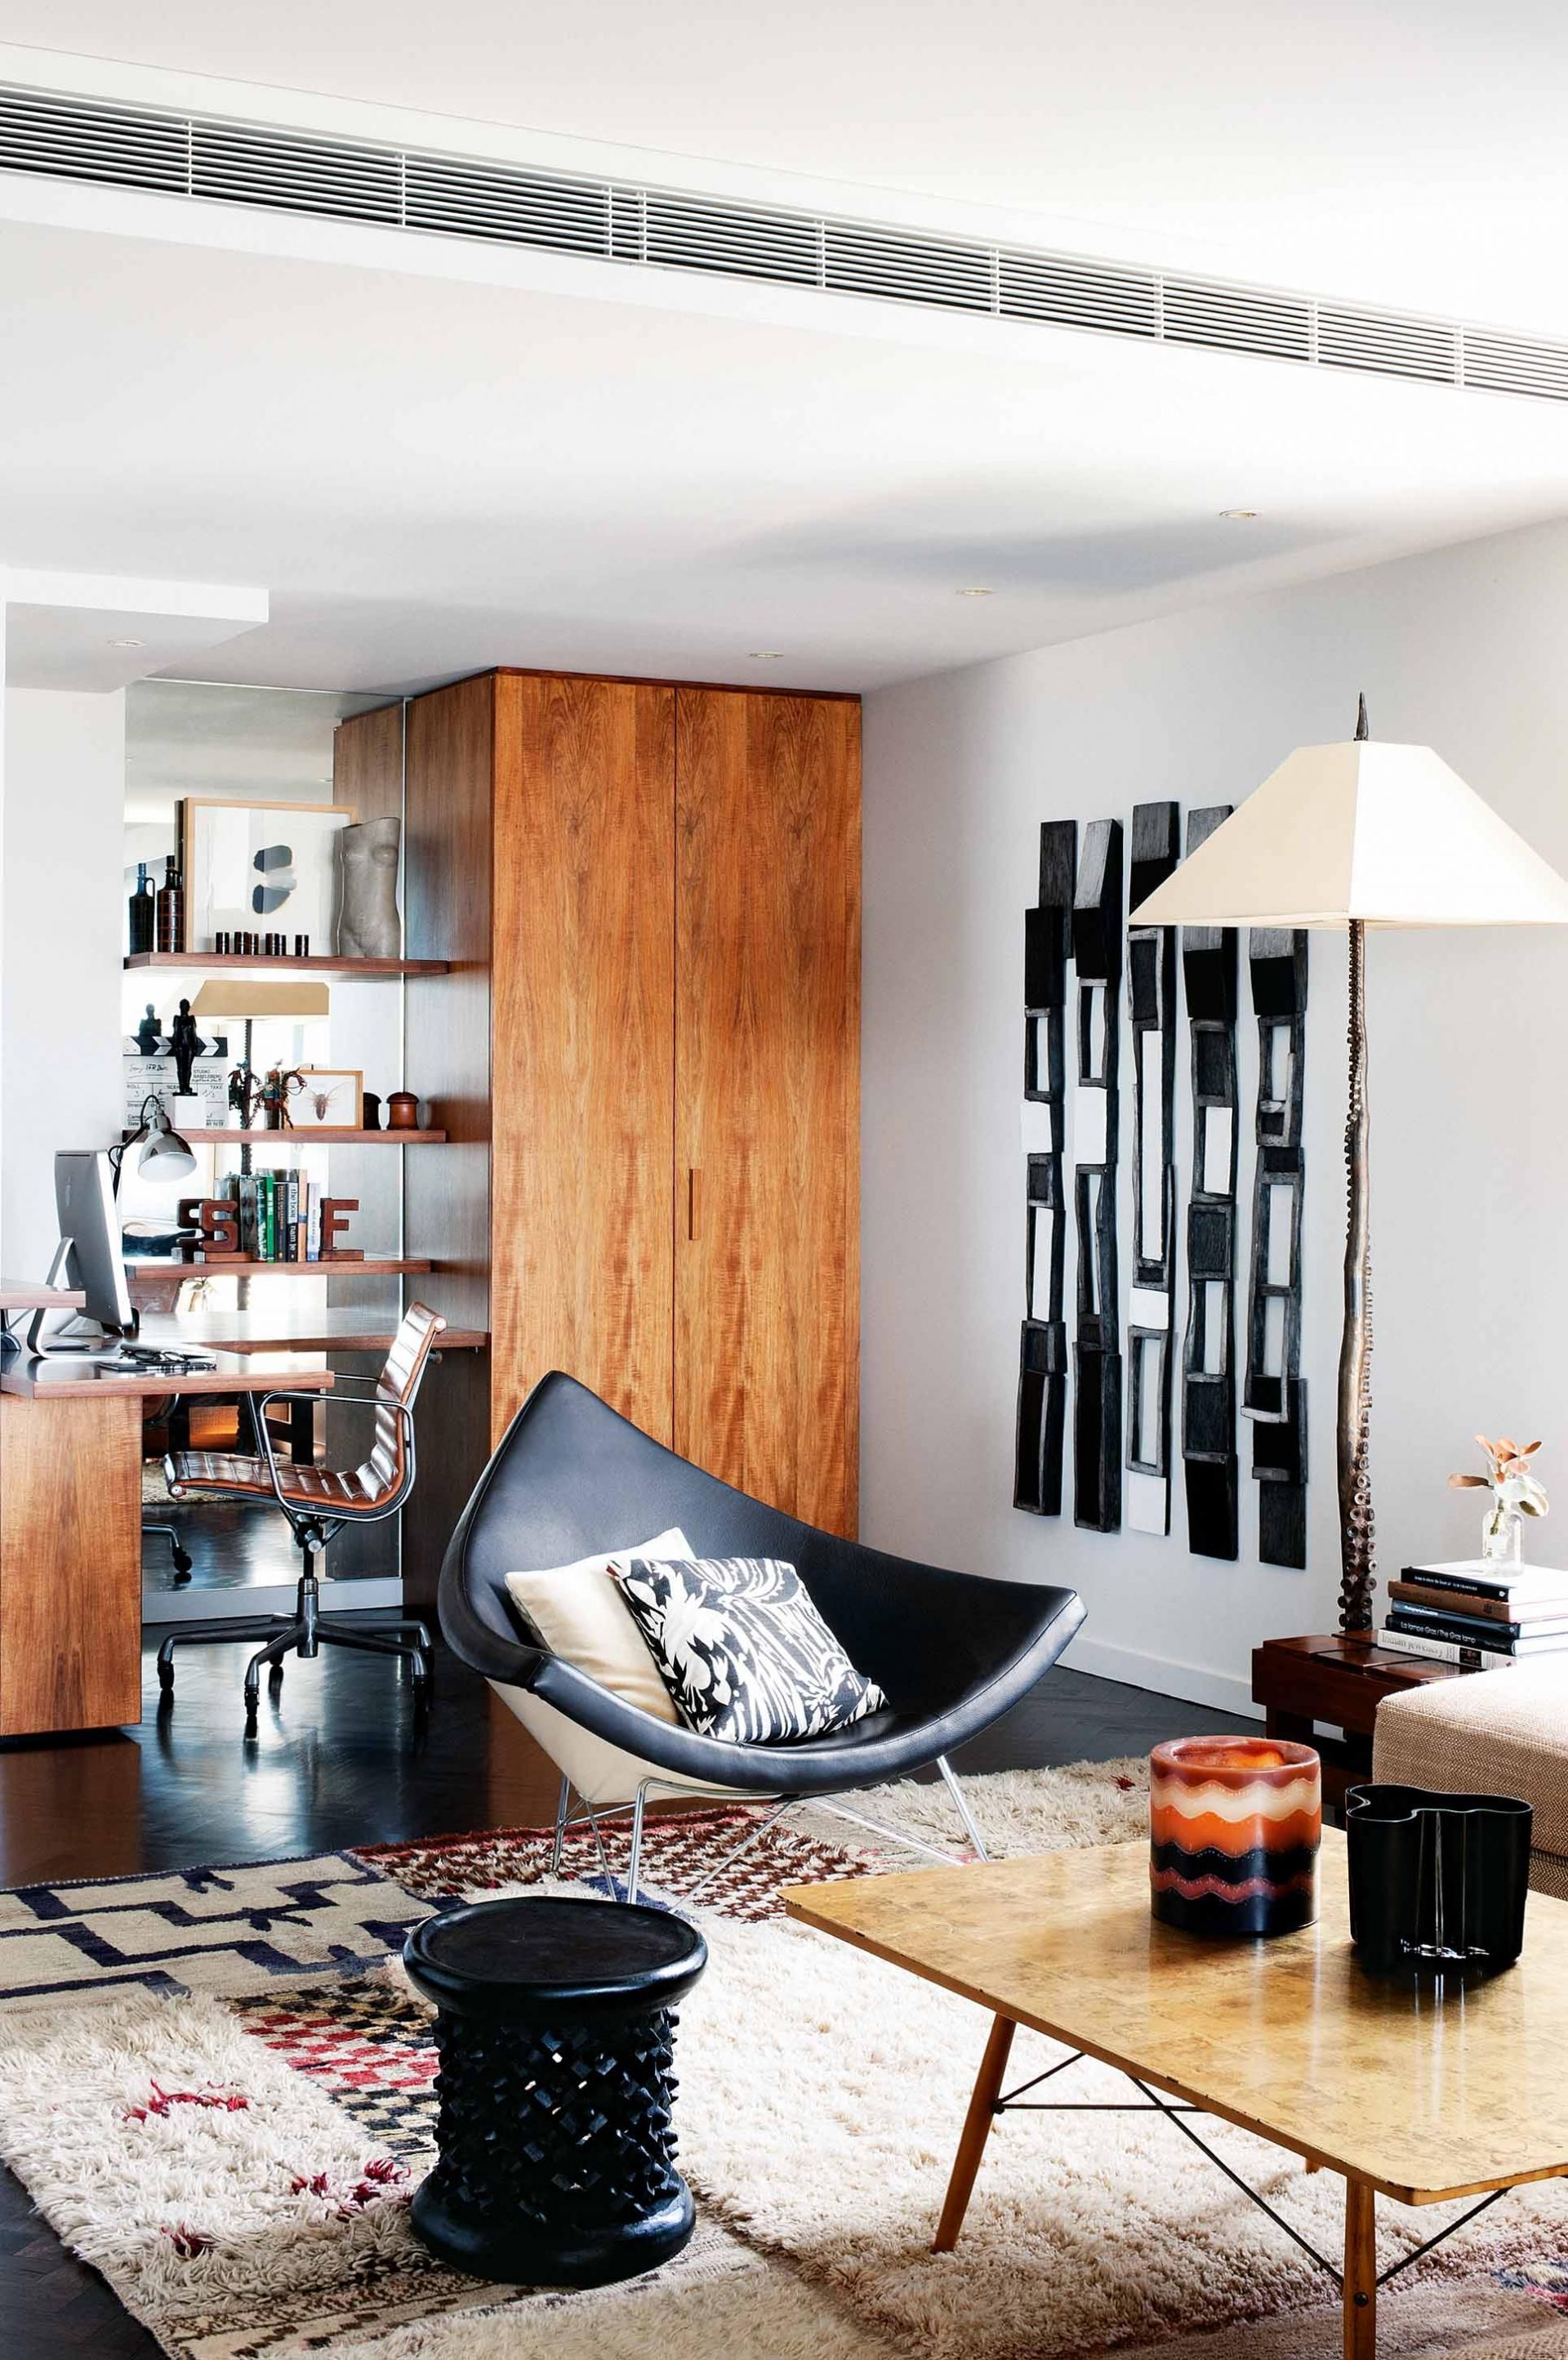 The amazing home of spenceandlydas fiona lyda styling by phoebe mcevoy photography by sam mcadam cooper